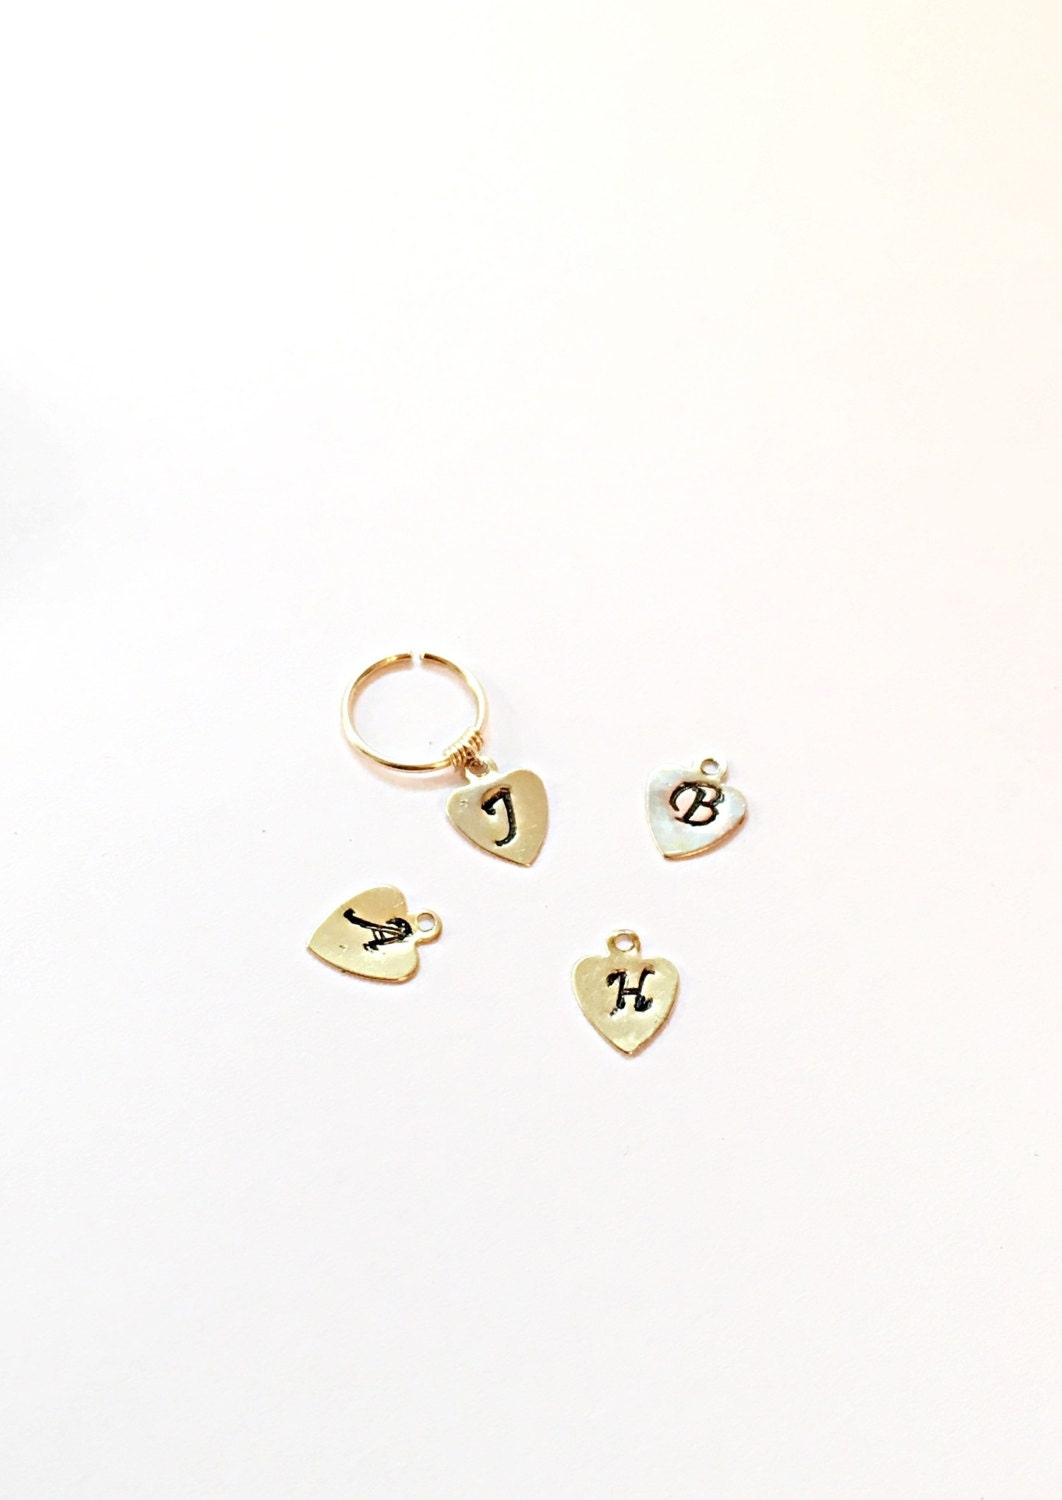 20g personalized cartilage earring gold cartilage hoop tiny